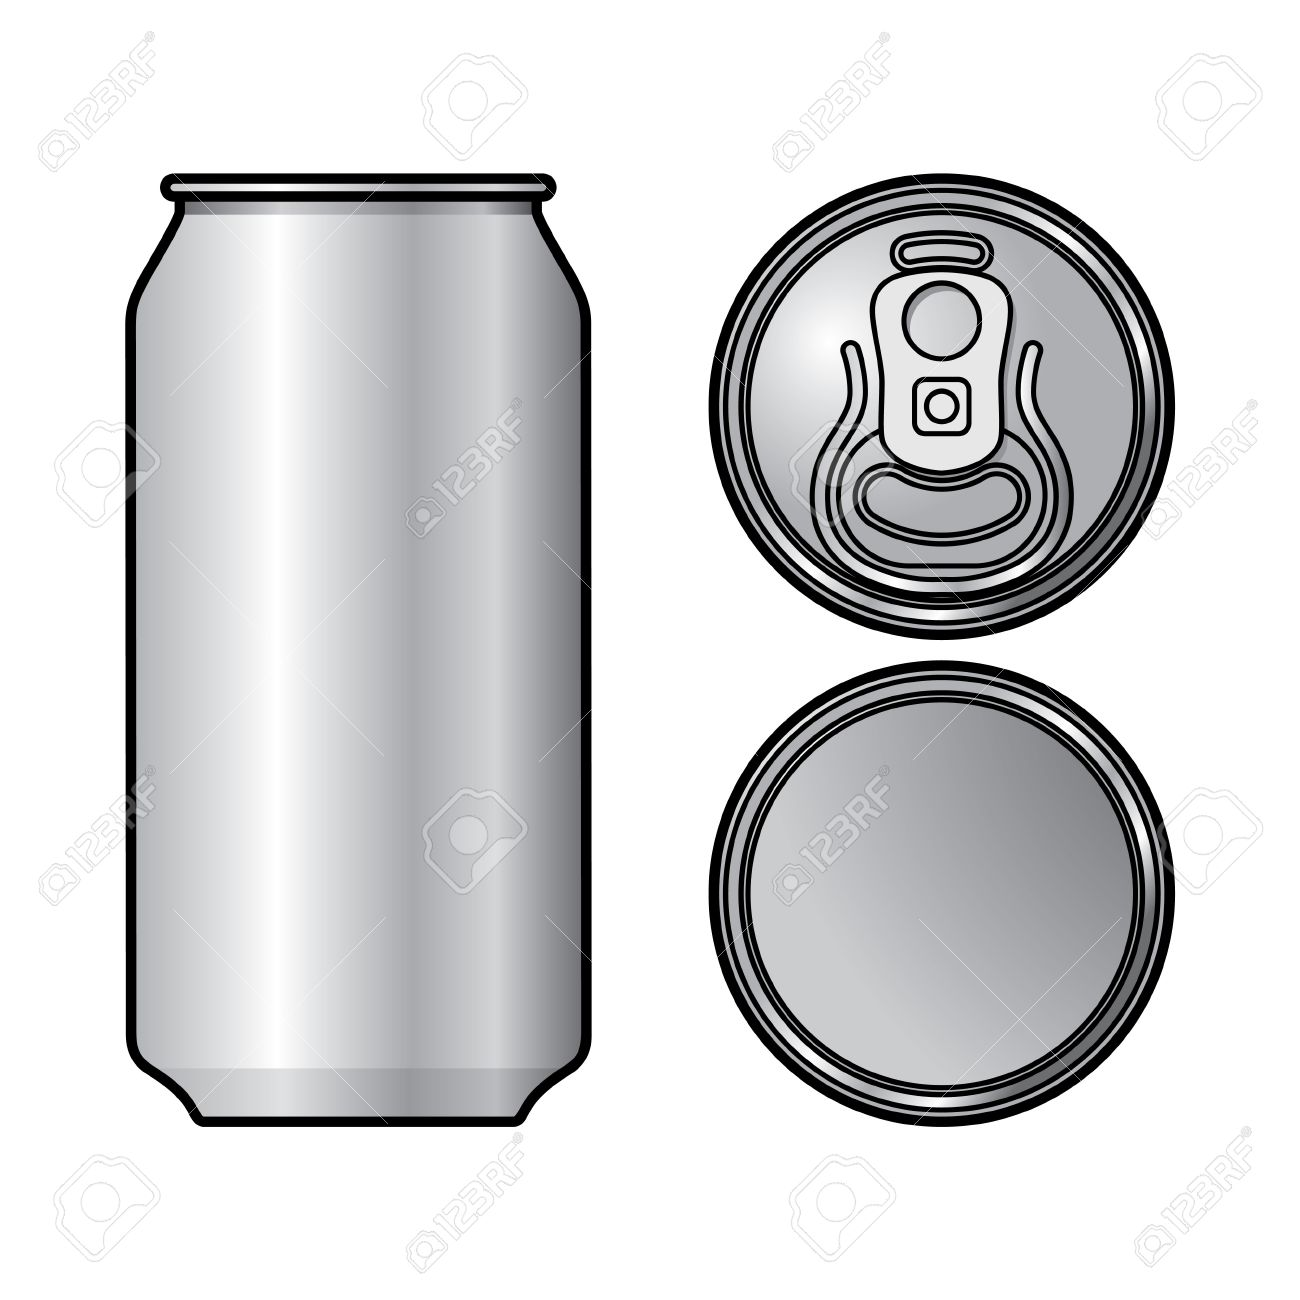 aluminium can container beer water beverage drink royalty free rh 123rf com beer can vector free download beer can vector image